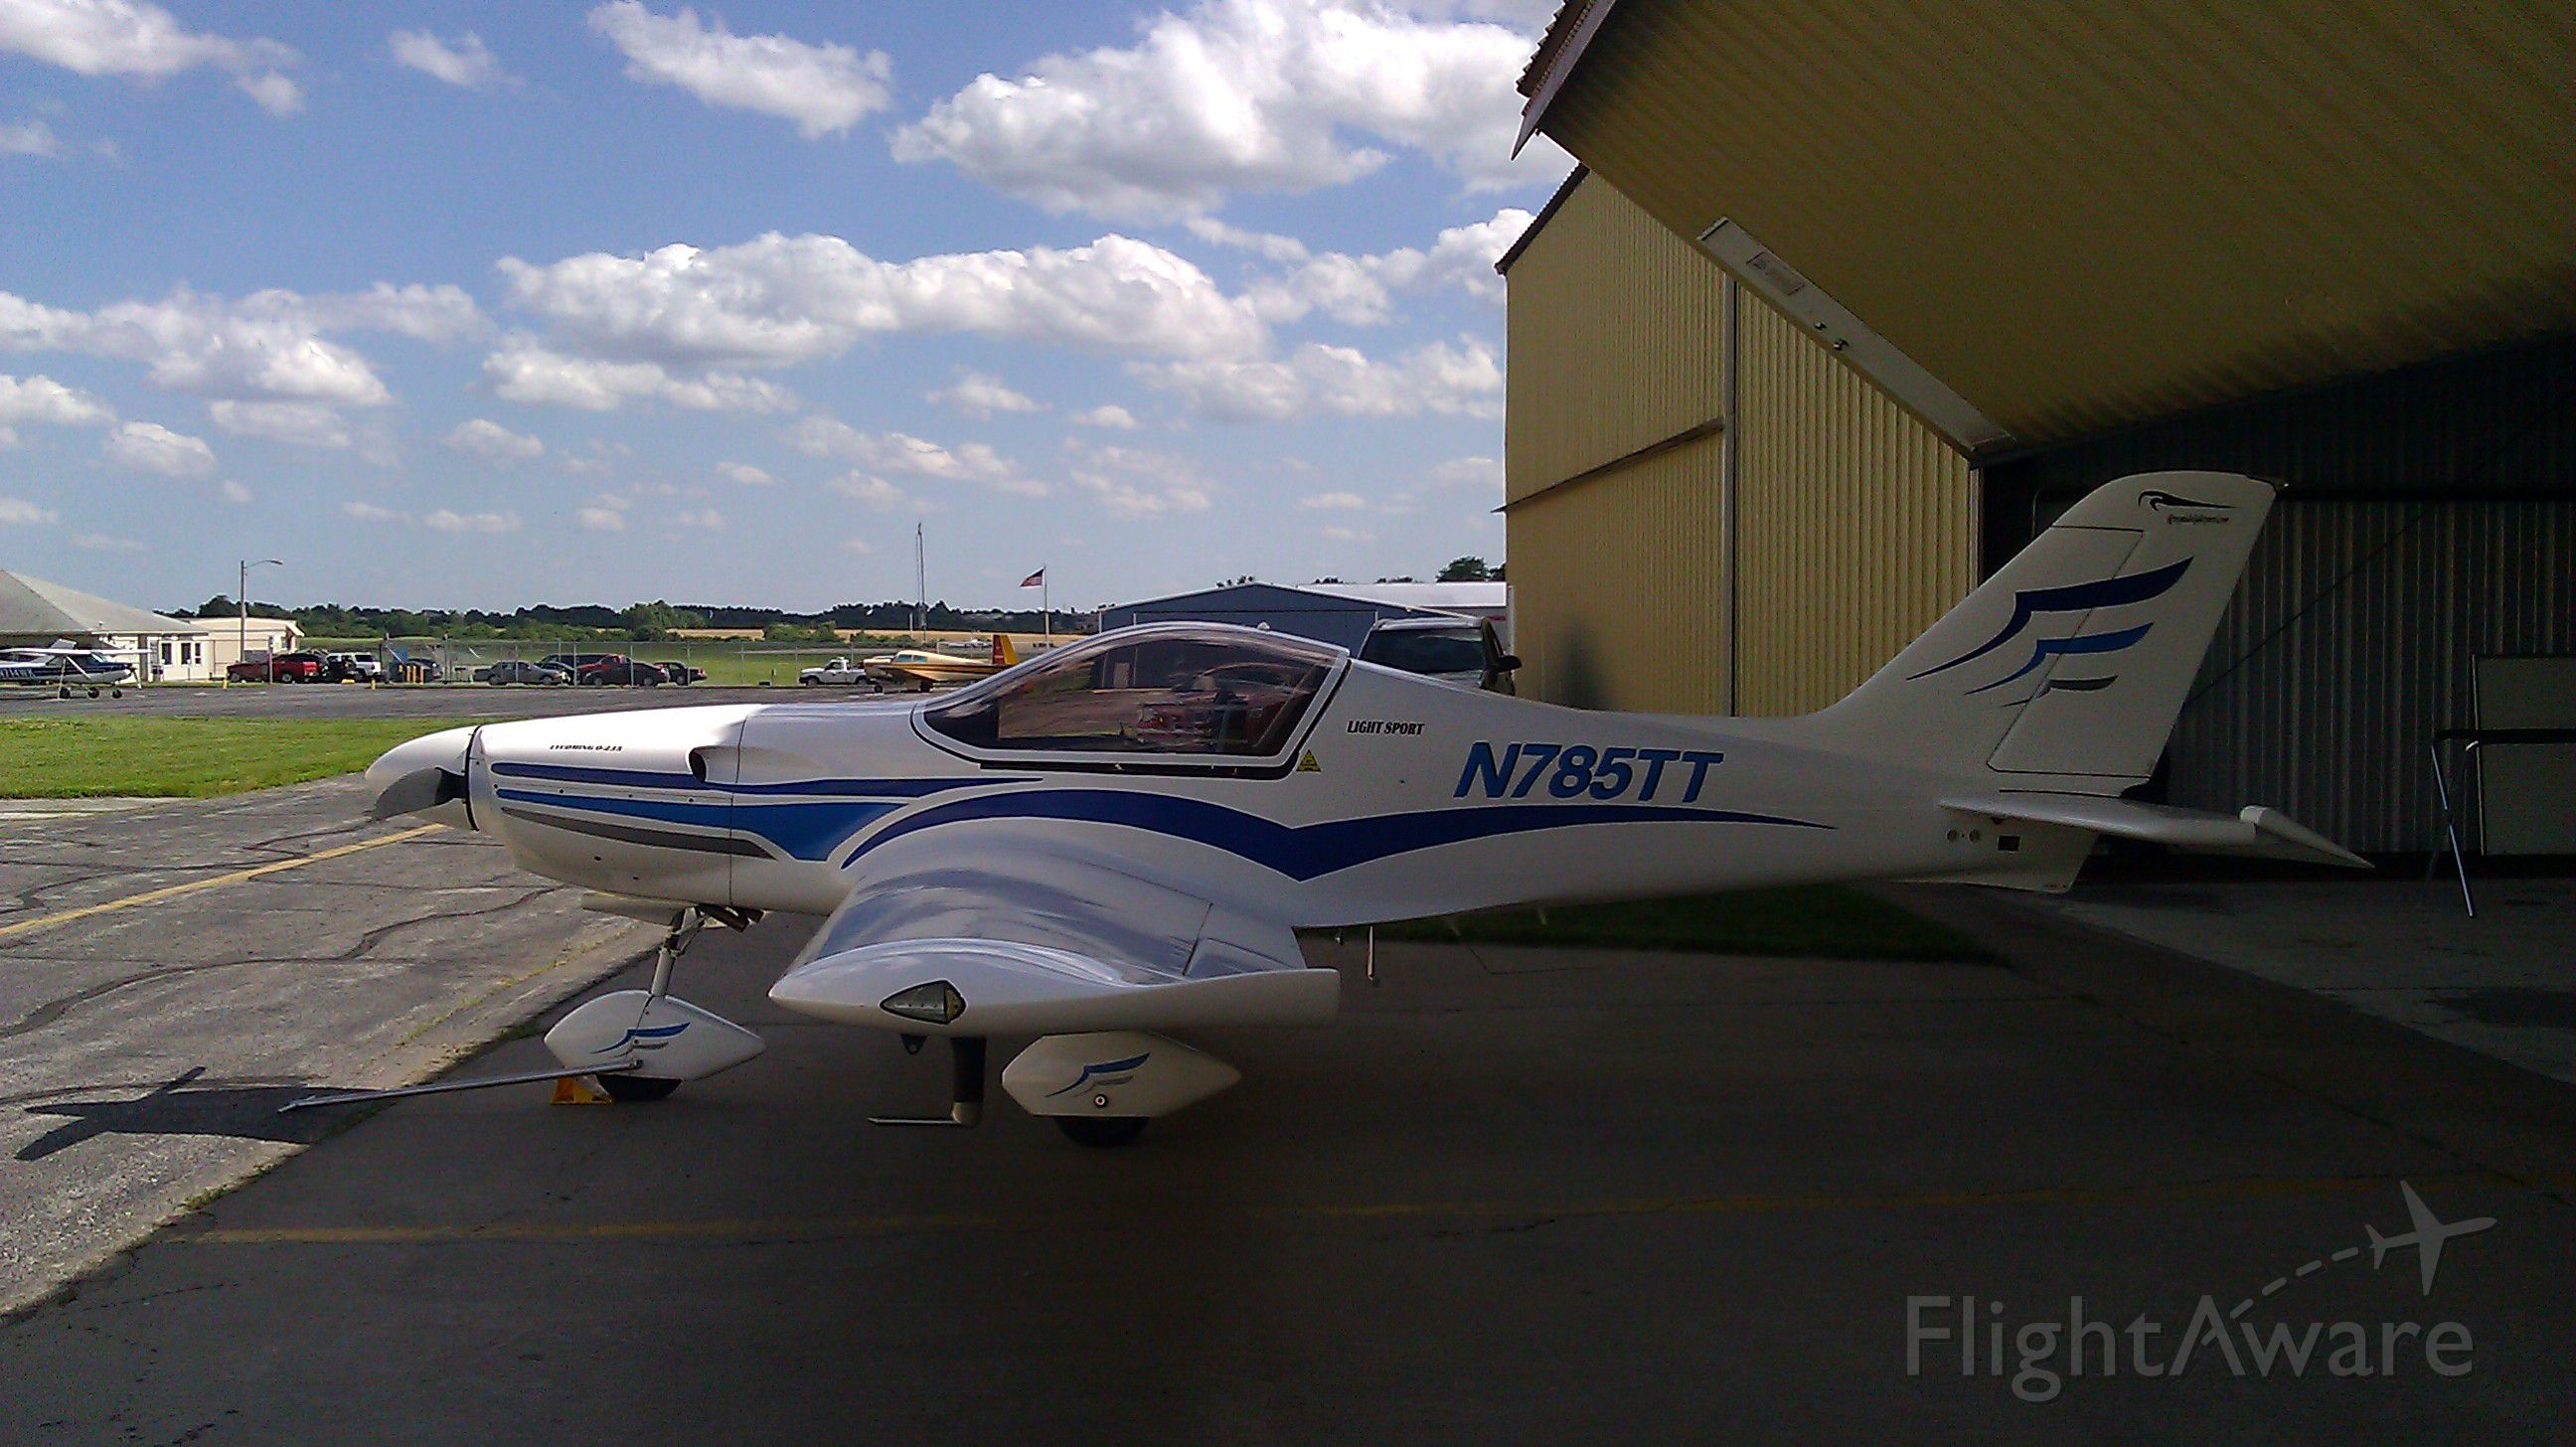 Experimental 100kts-200kts (N785TT) - The Falcon LS. Manufactured with a 116HP Lycomimg o-235. Available for rental or flight instruction at Renegade Light Sport.